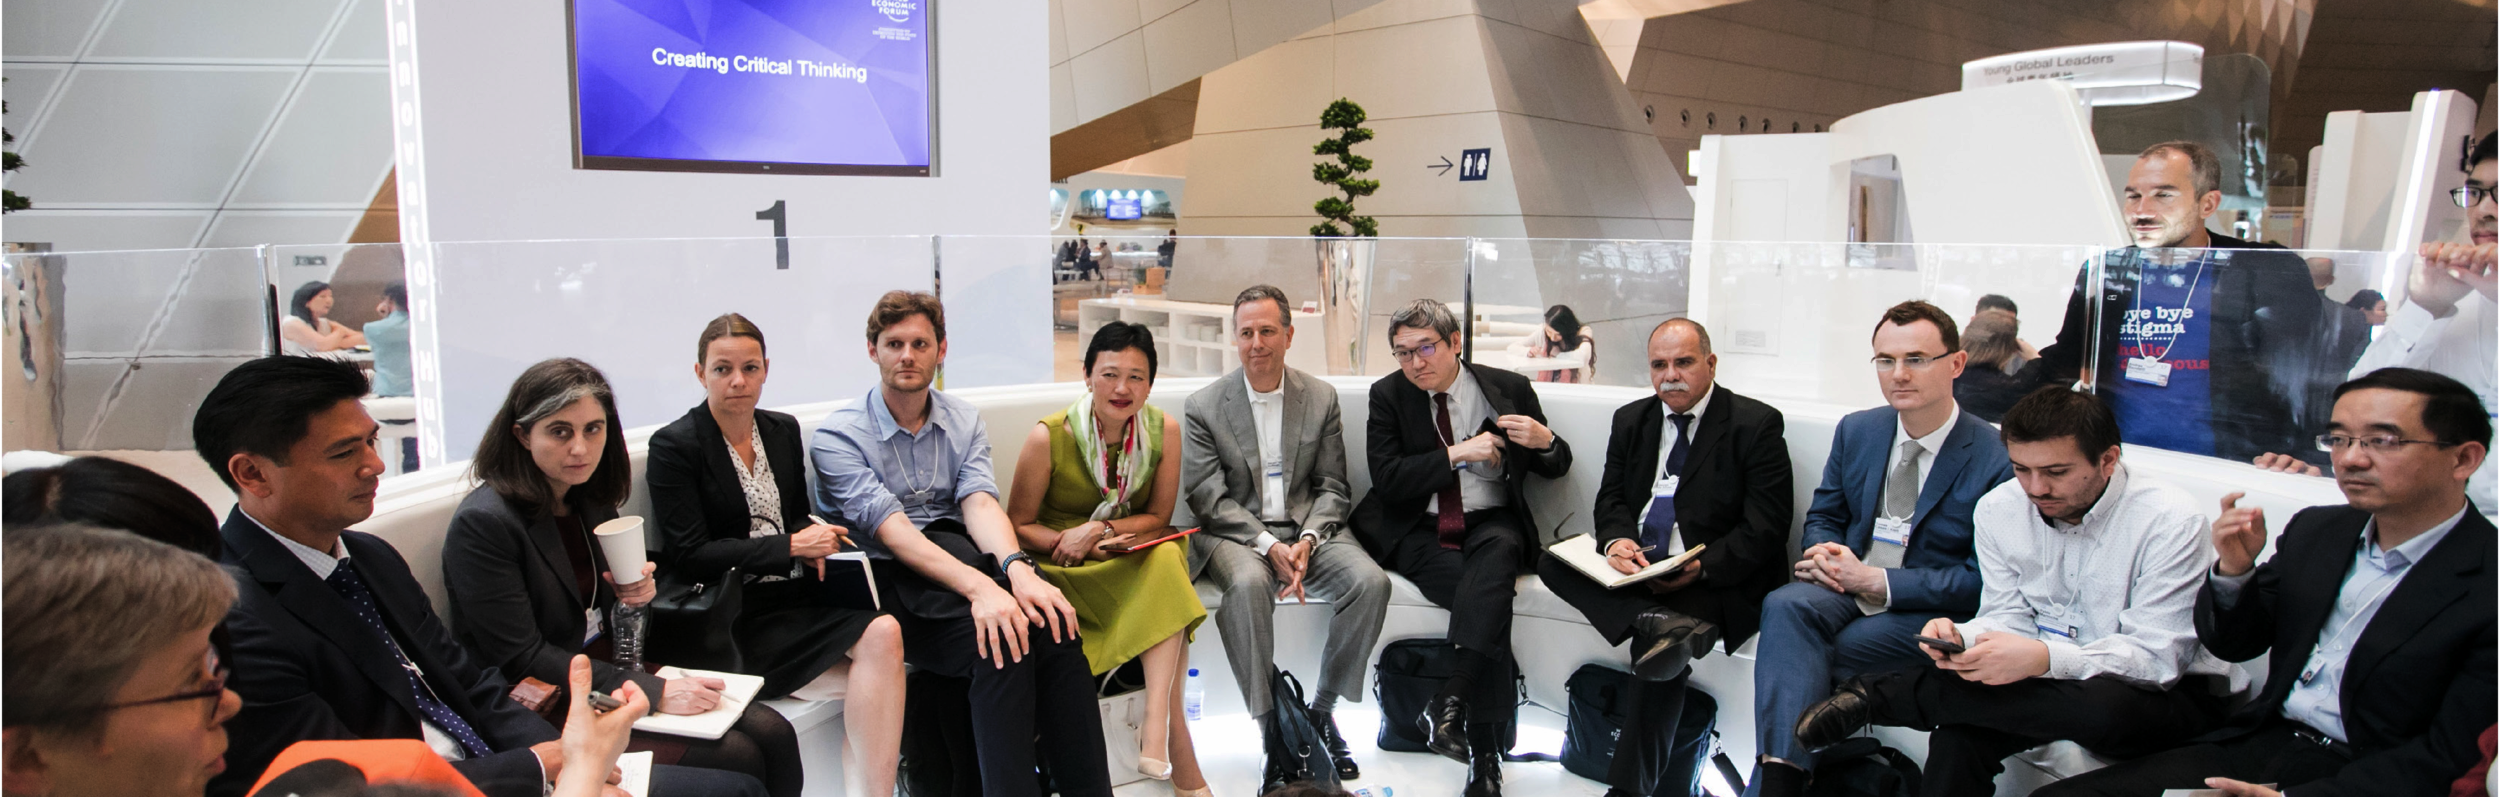 COO/CFO Margie Wang led a panel discussing soft skills and hard skills for young people at the World Economic Forum Meeting of New Champions in China.